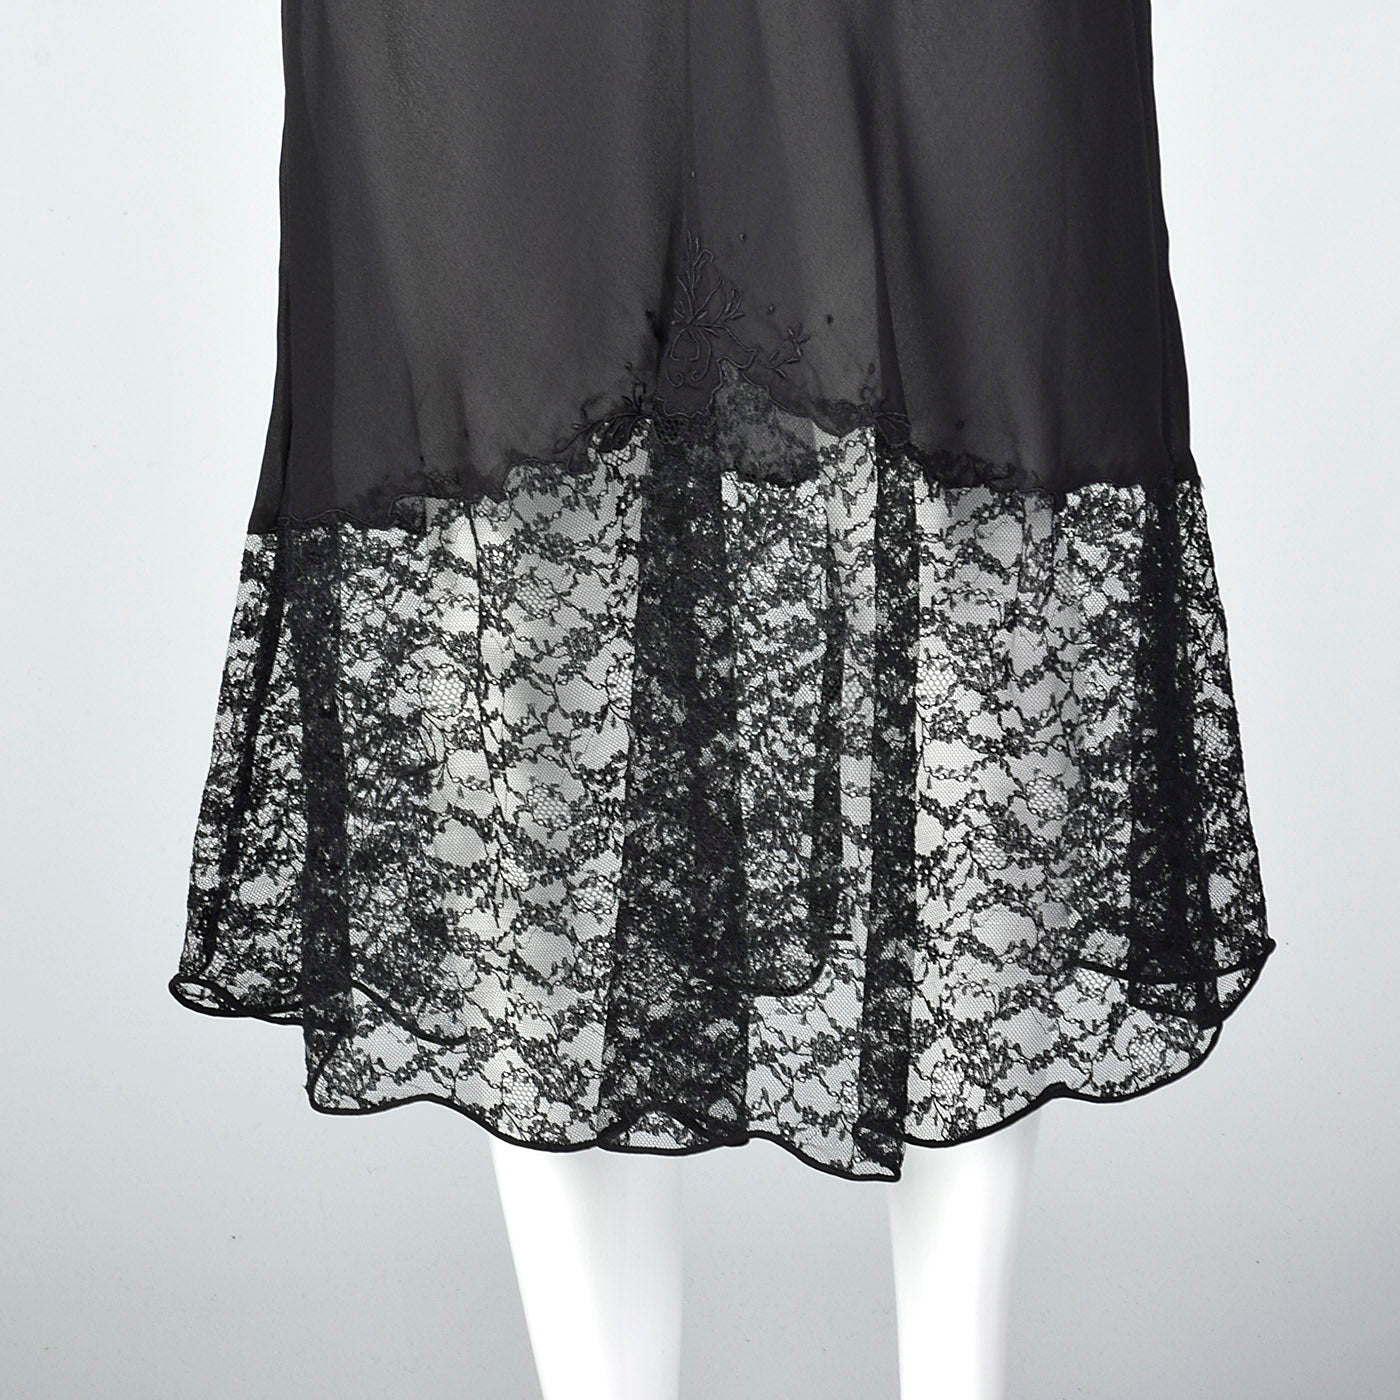 1940s Black Half Slip with Scalloped Sheer Lace Hem